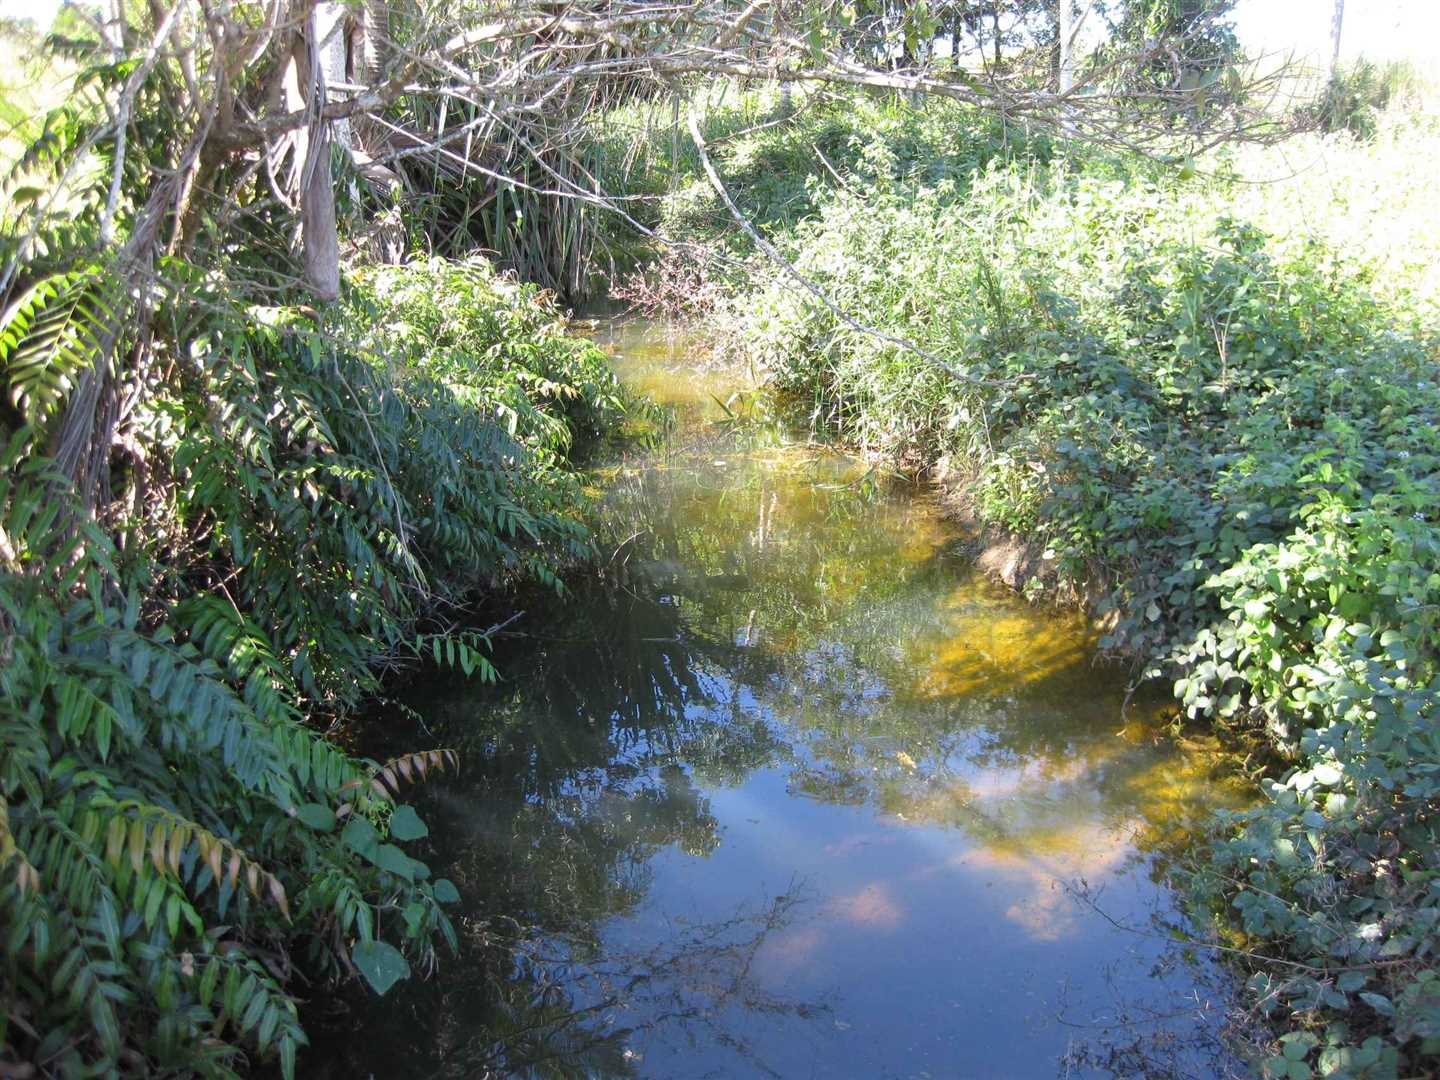 View of part of second internal creek in the property